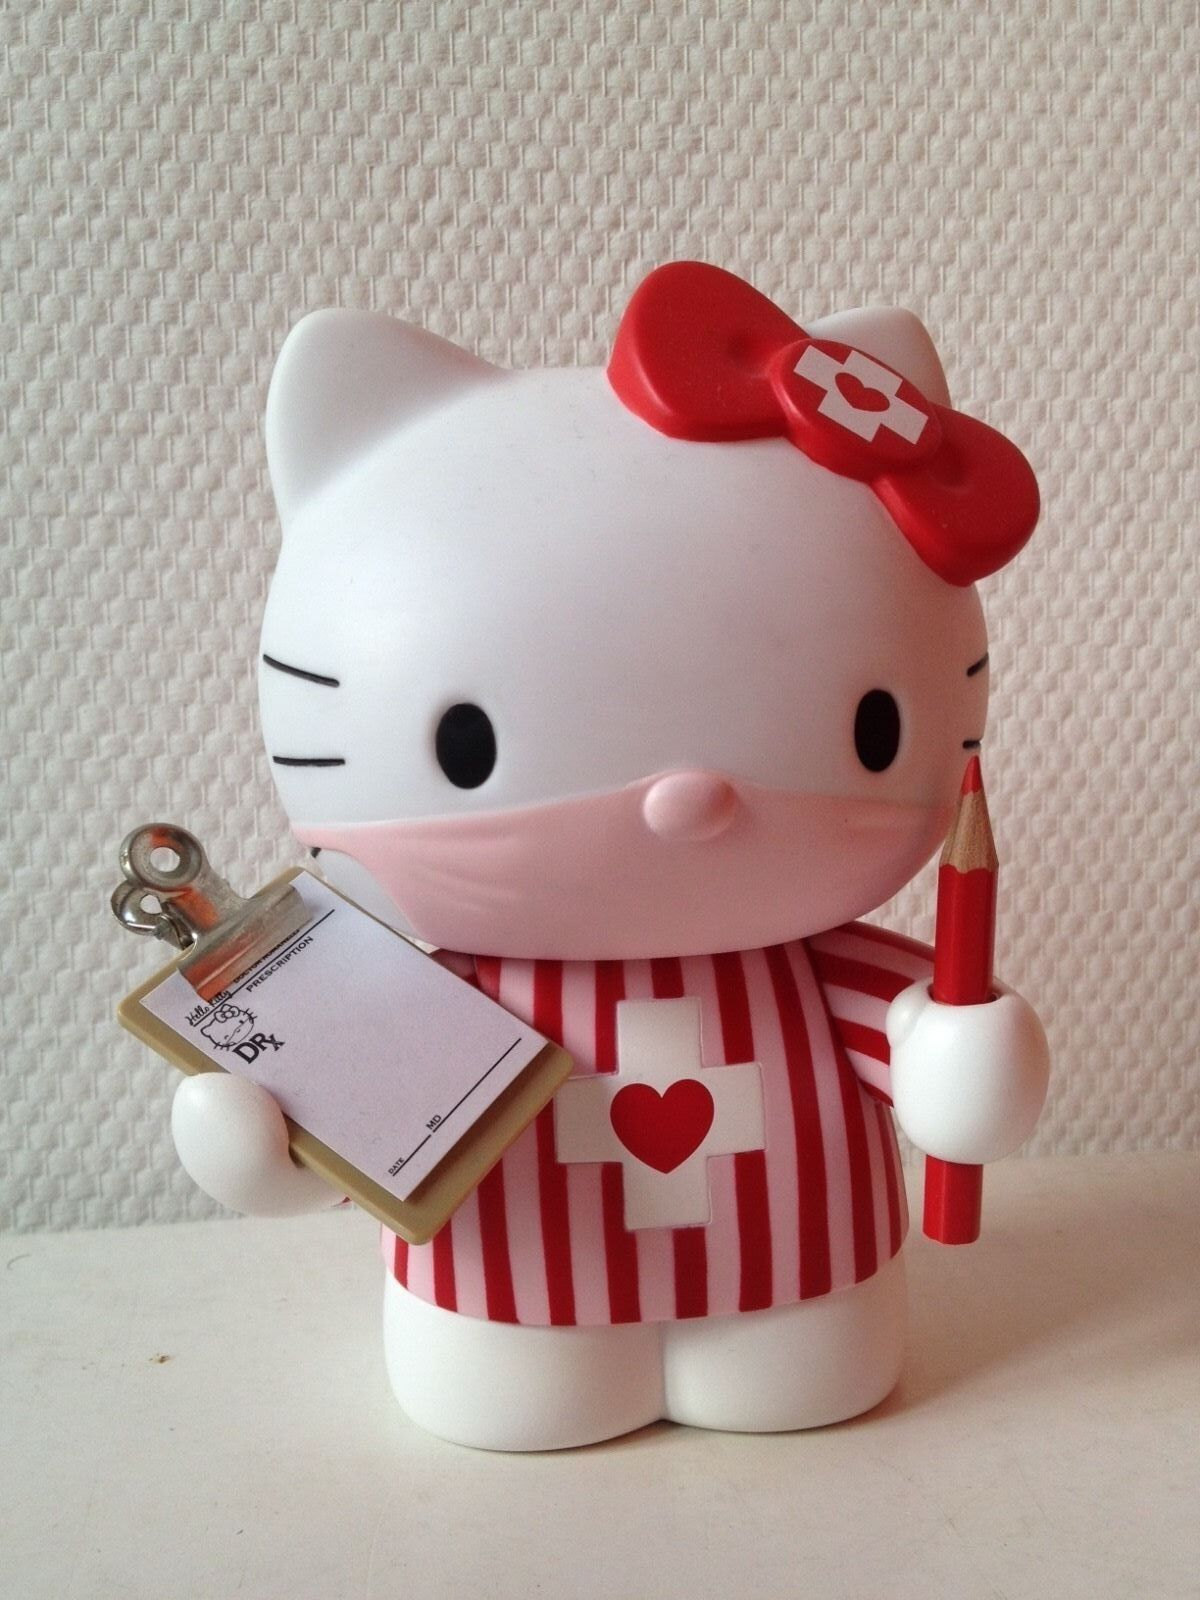 Hello Kitty Medicom Medicomtoy Dr Romanelli VCD Collectible Vinyl Candy Sanrio